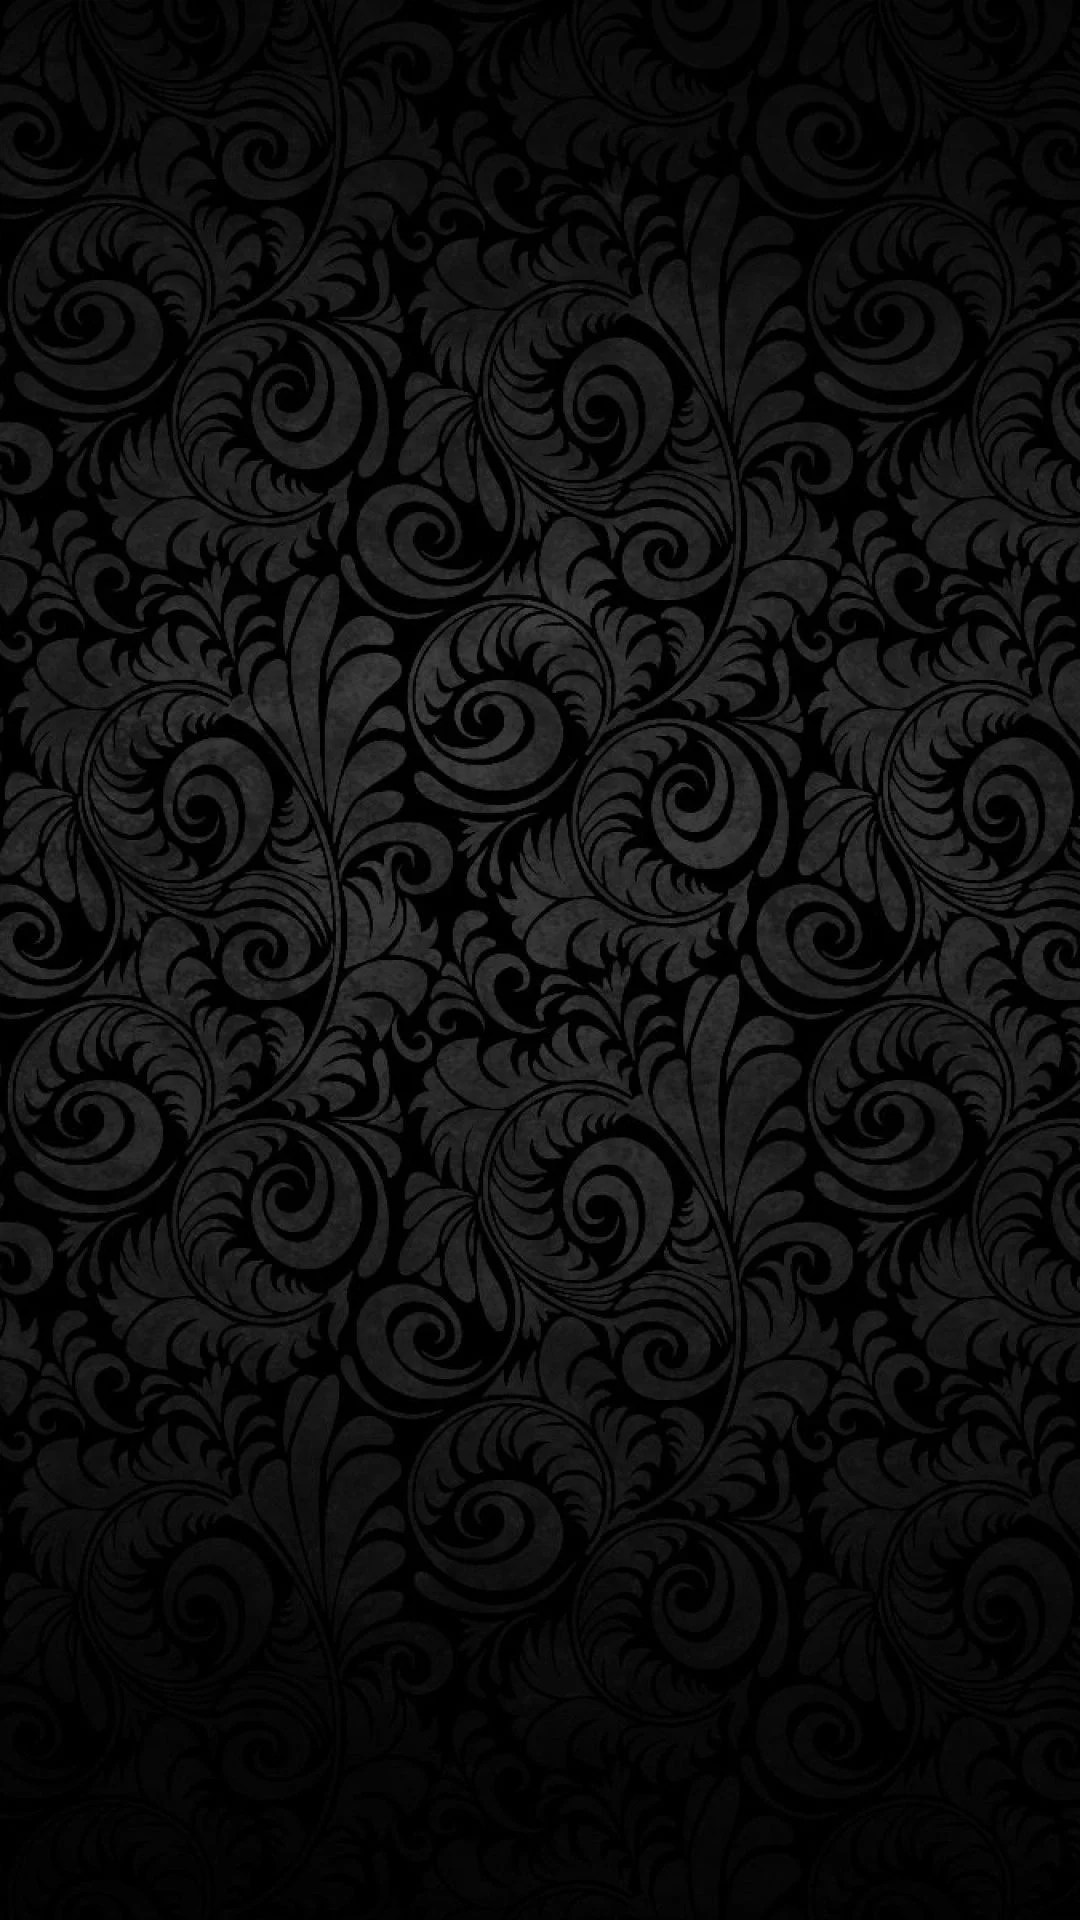 Black Iphone 6 Plus Wallpapers Top Free Black Iphone 6 Plus Backgrounds Wallpaperaccess